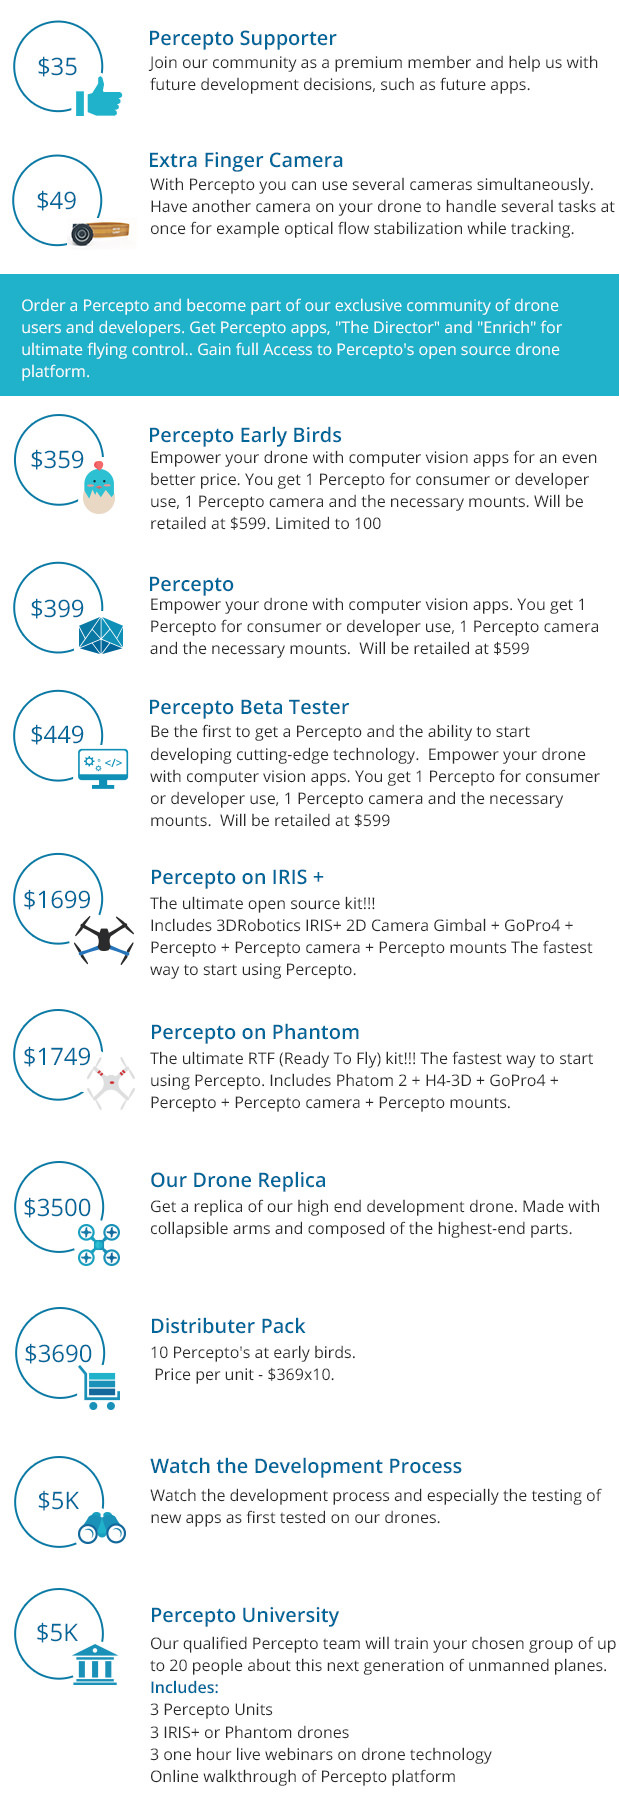 出典:https://www.indiegogo.com/projects/percepto-computer-vision-apps-for-drones